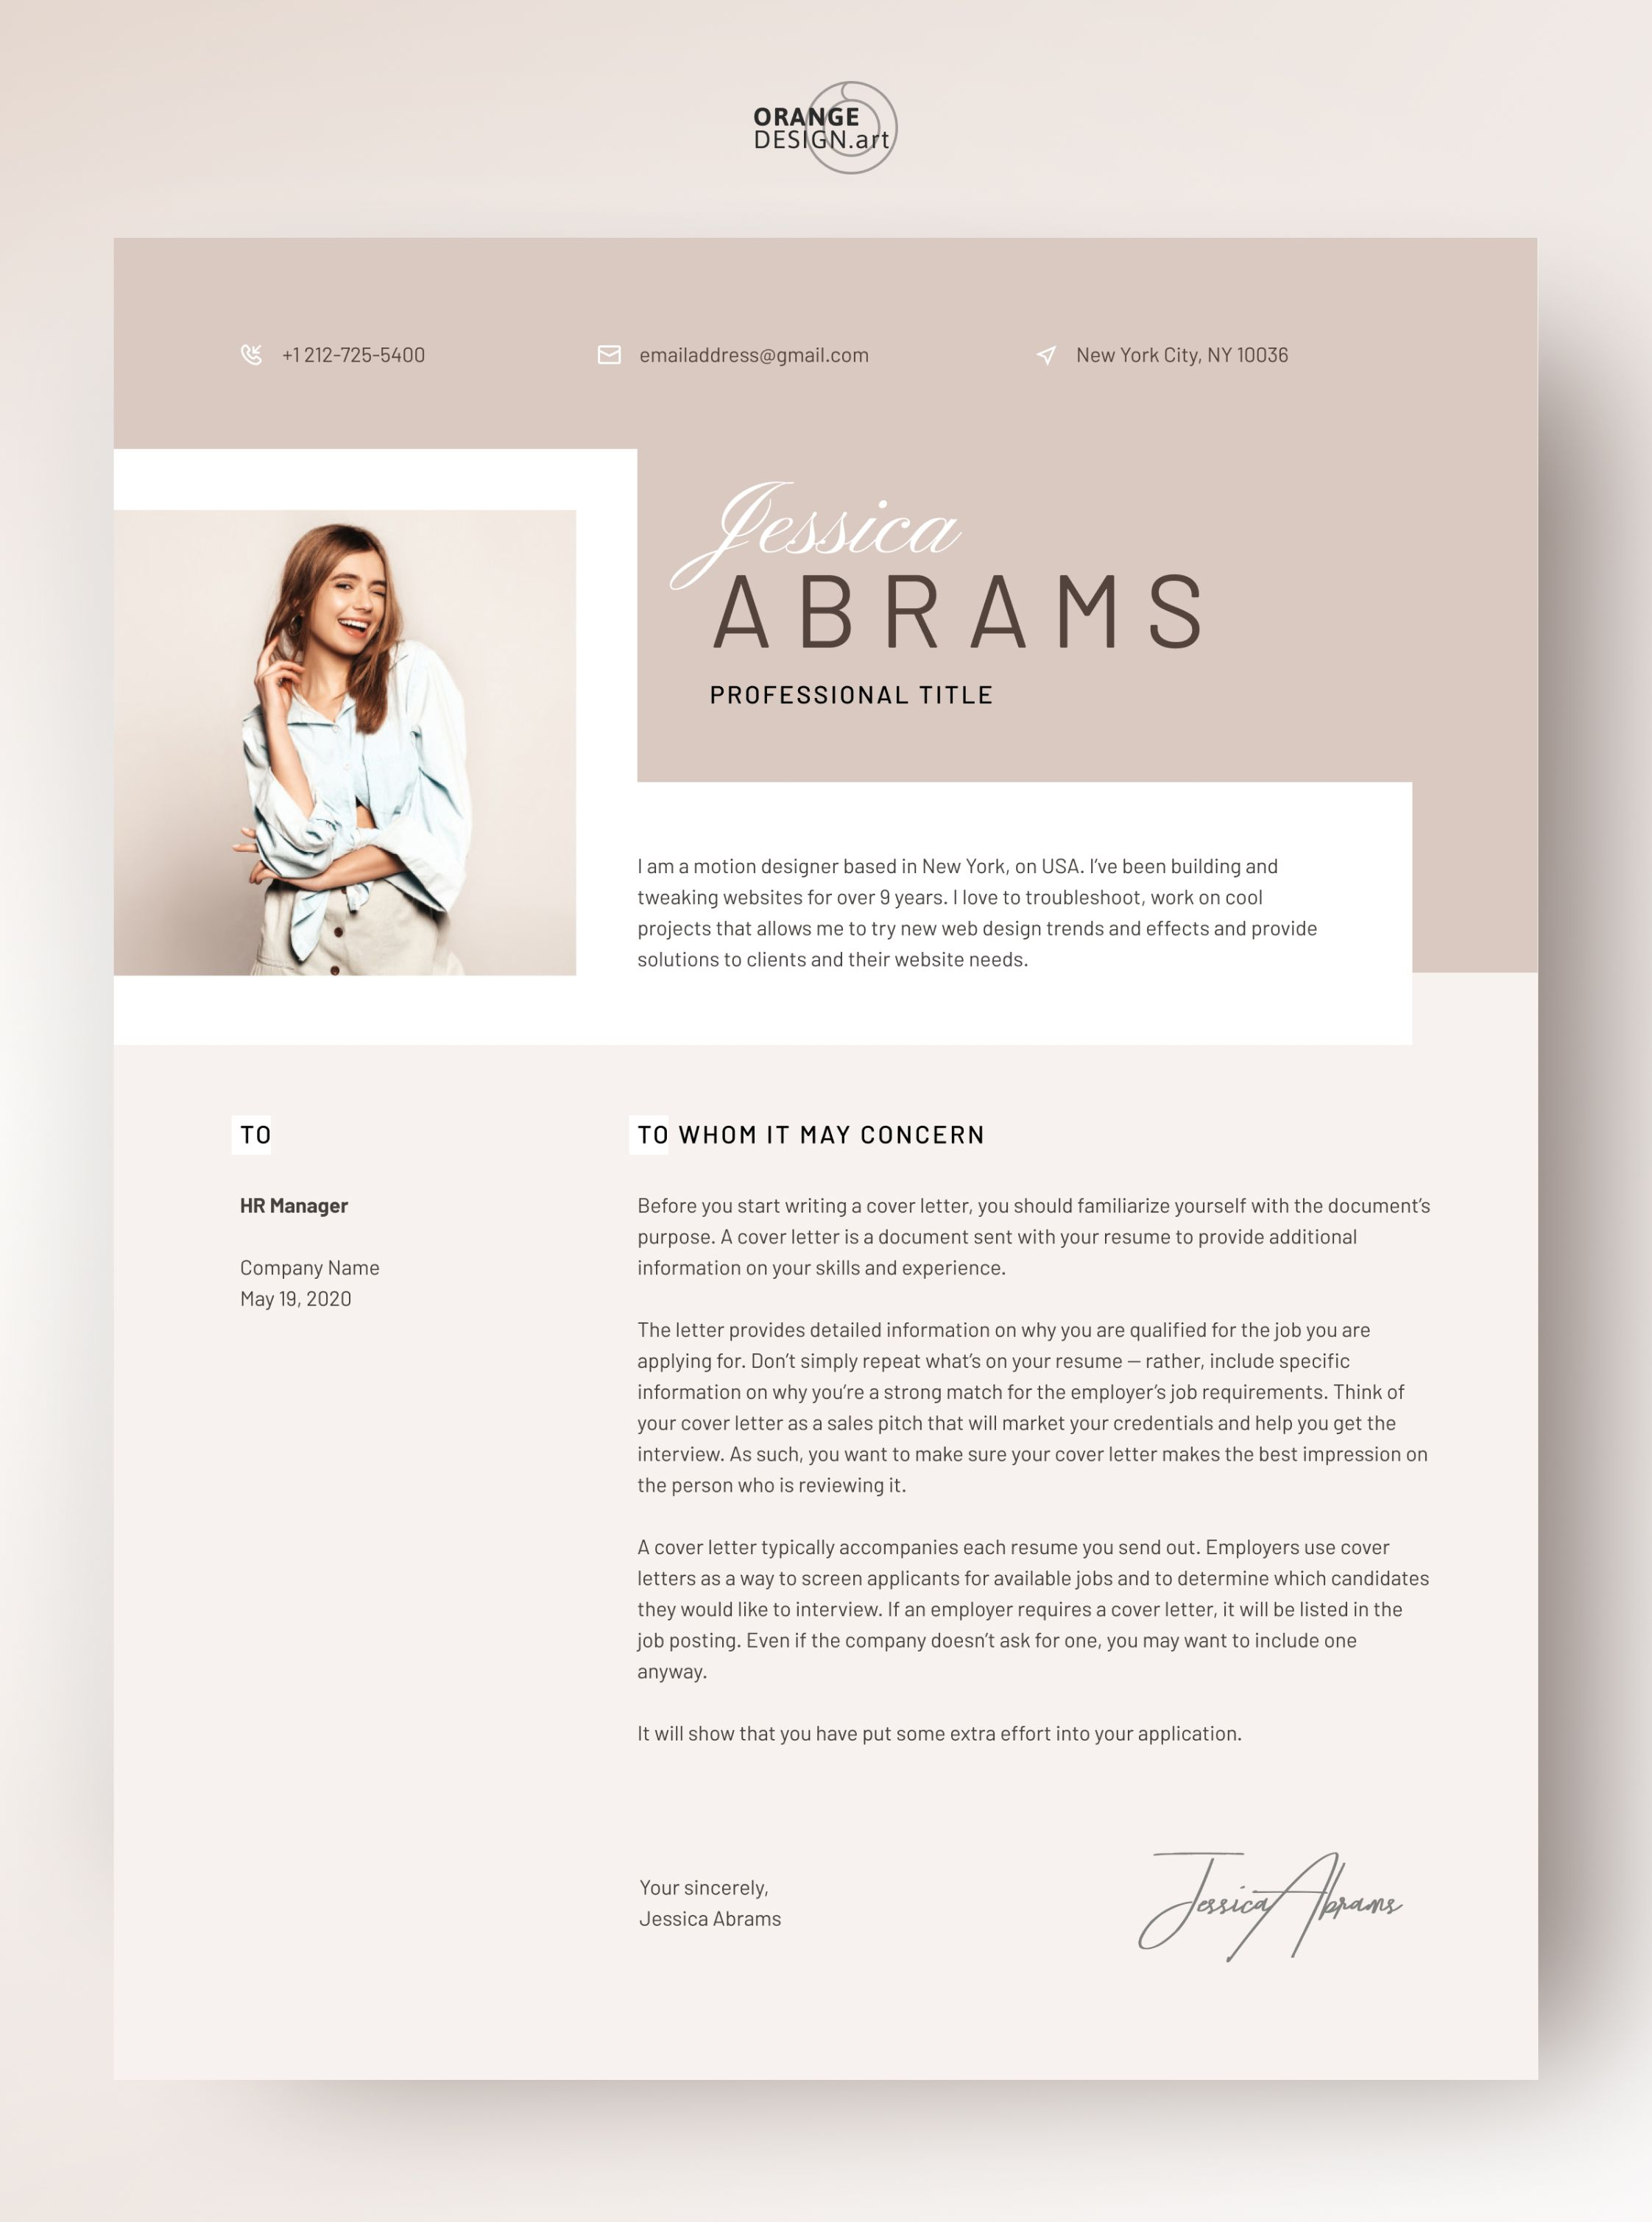 Resume Template Word 2020 Professional Cv Template With Photo Modern Cv Design Creative Resume Template Free Curriculum Vitae Abrams In 2021 Resume Template Cv Template Professional Resume Template Word